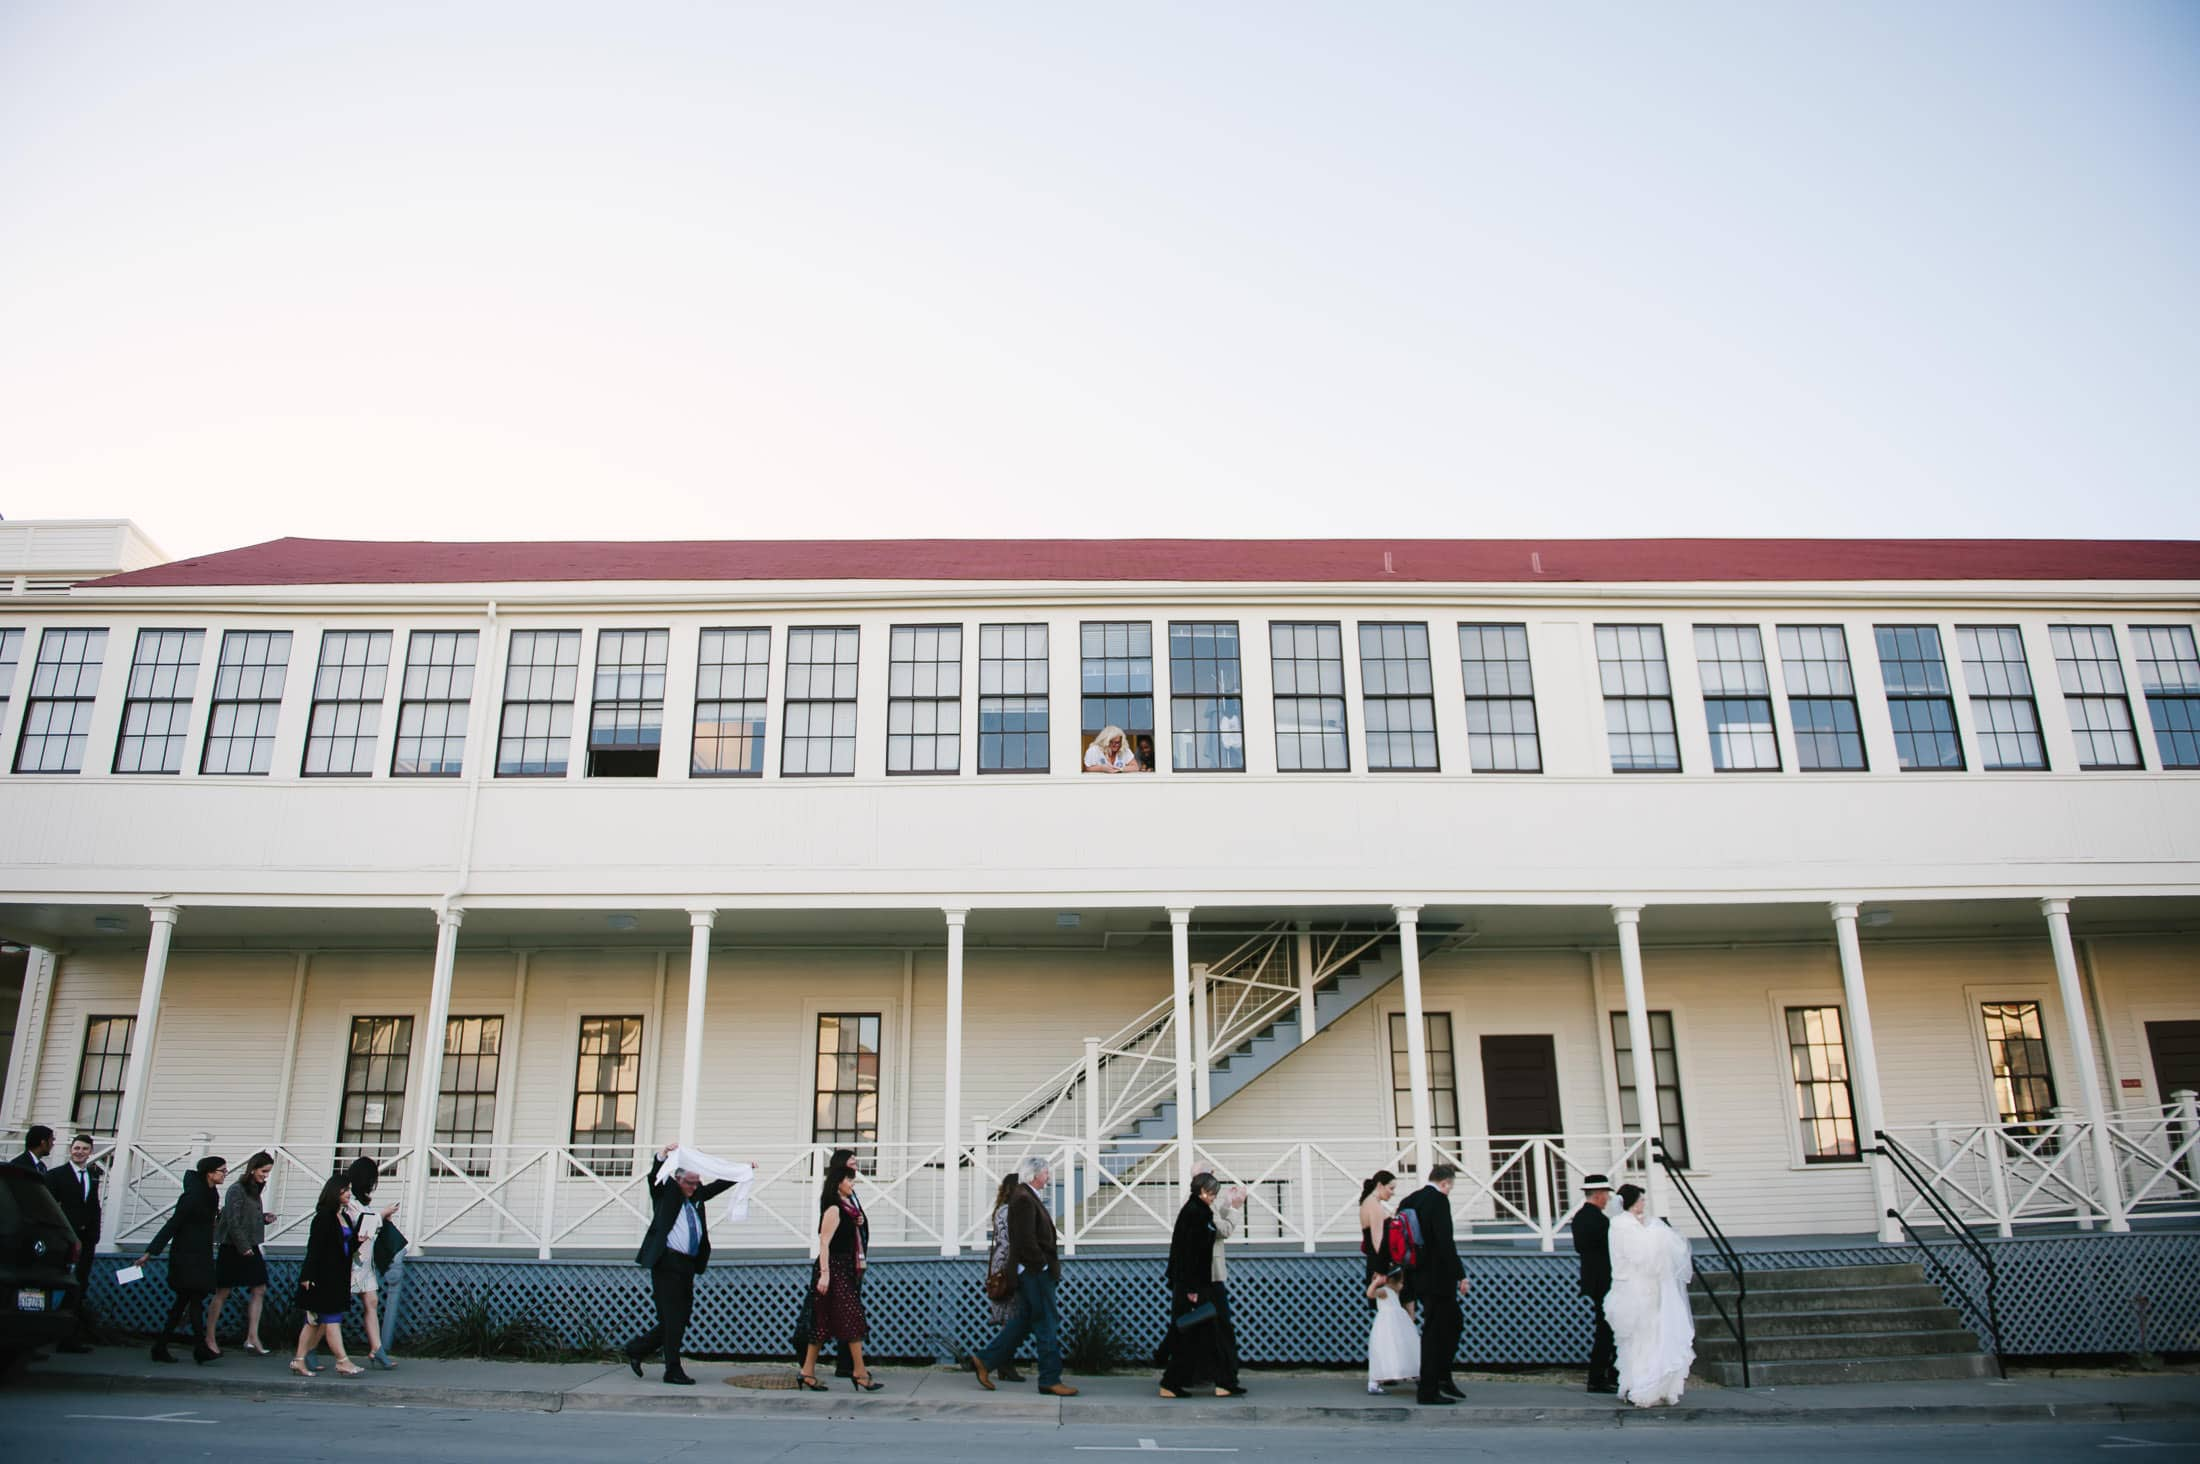 Parading Wedding Party in the San Francisco Presidio